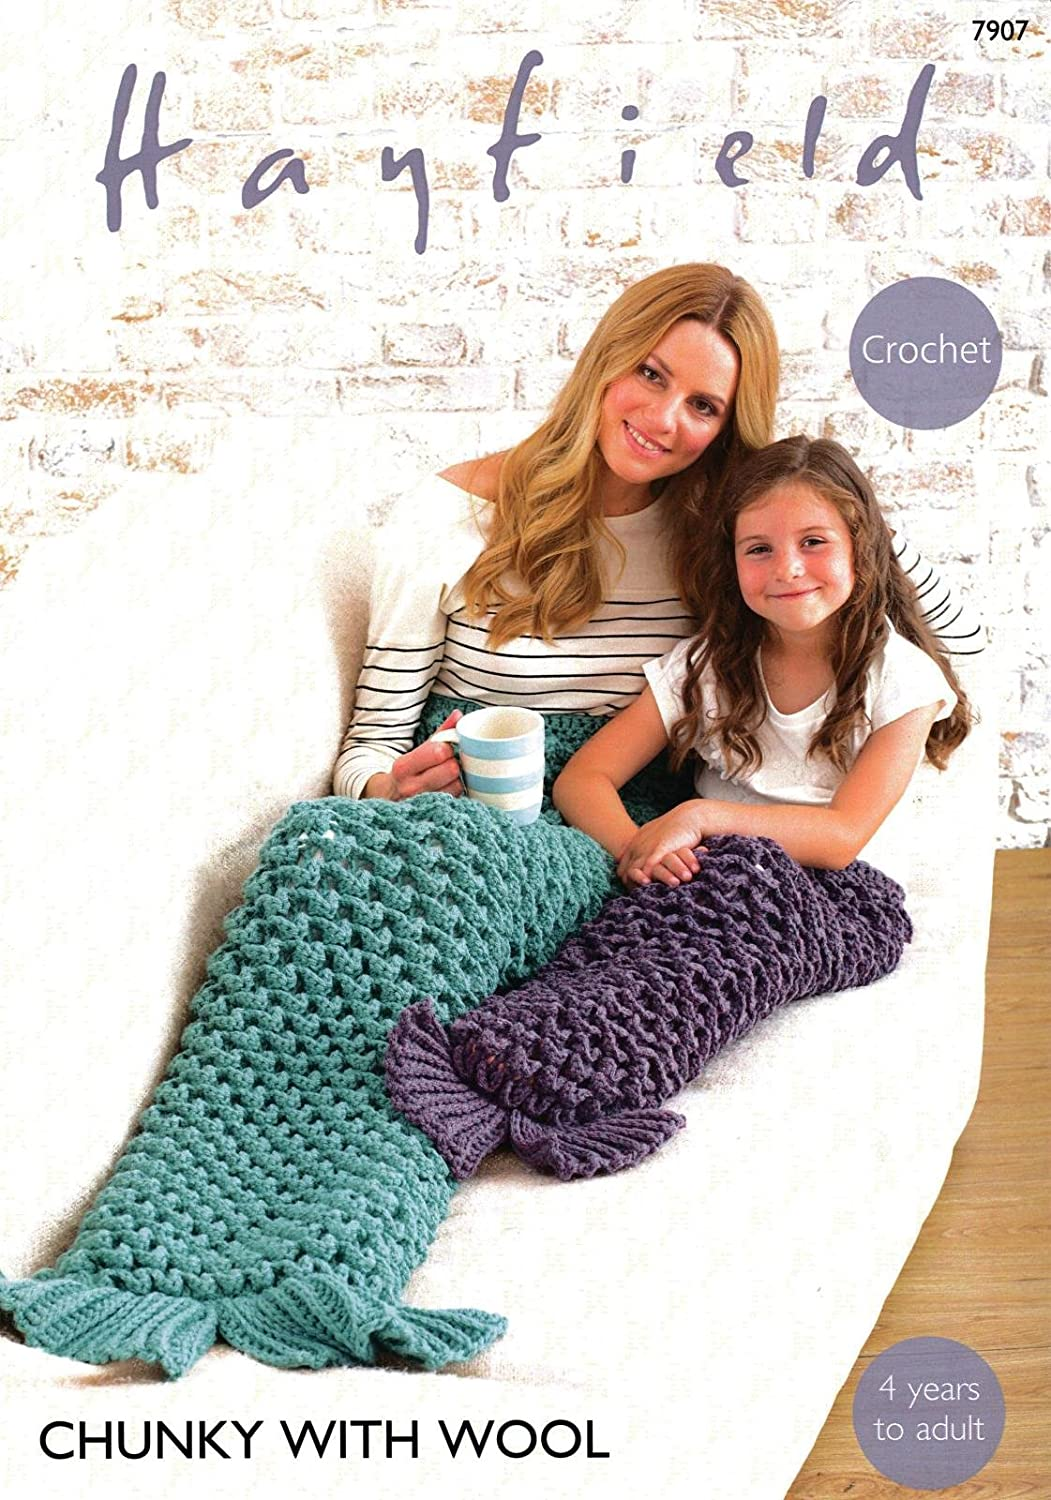 Sirdar 7907 Crochet Pattern Mermaid Tails in Hayfield Chunky with ...